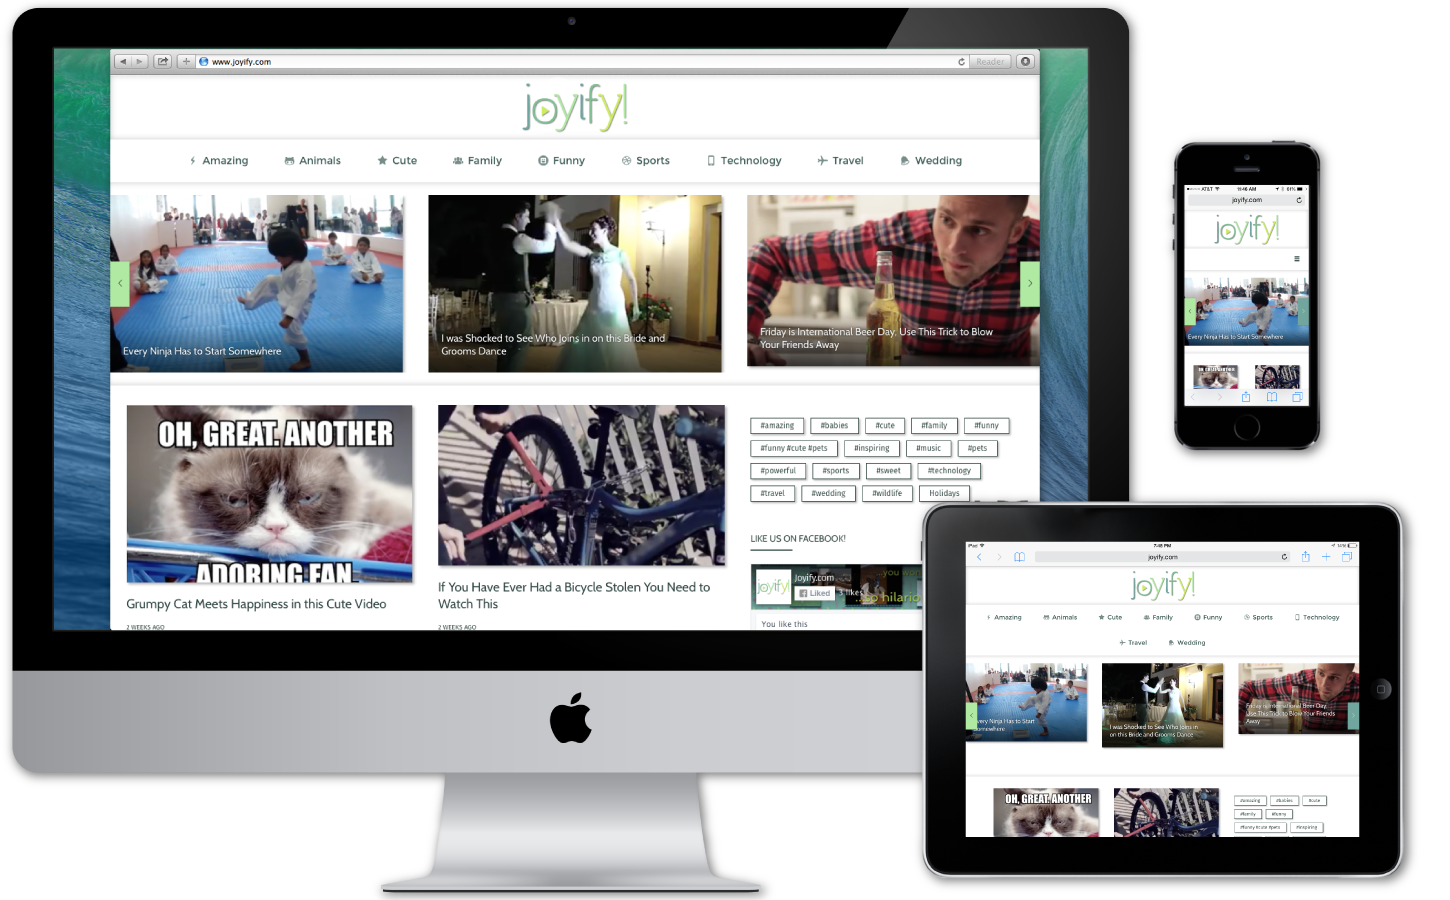 For this project, the client wanted a clean, responsive WordPress site built for displaying embedded video content across all platforms.